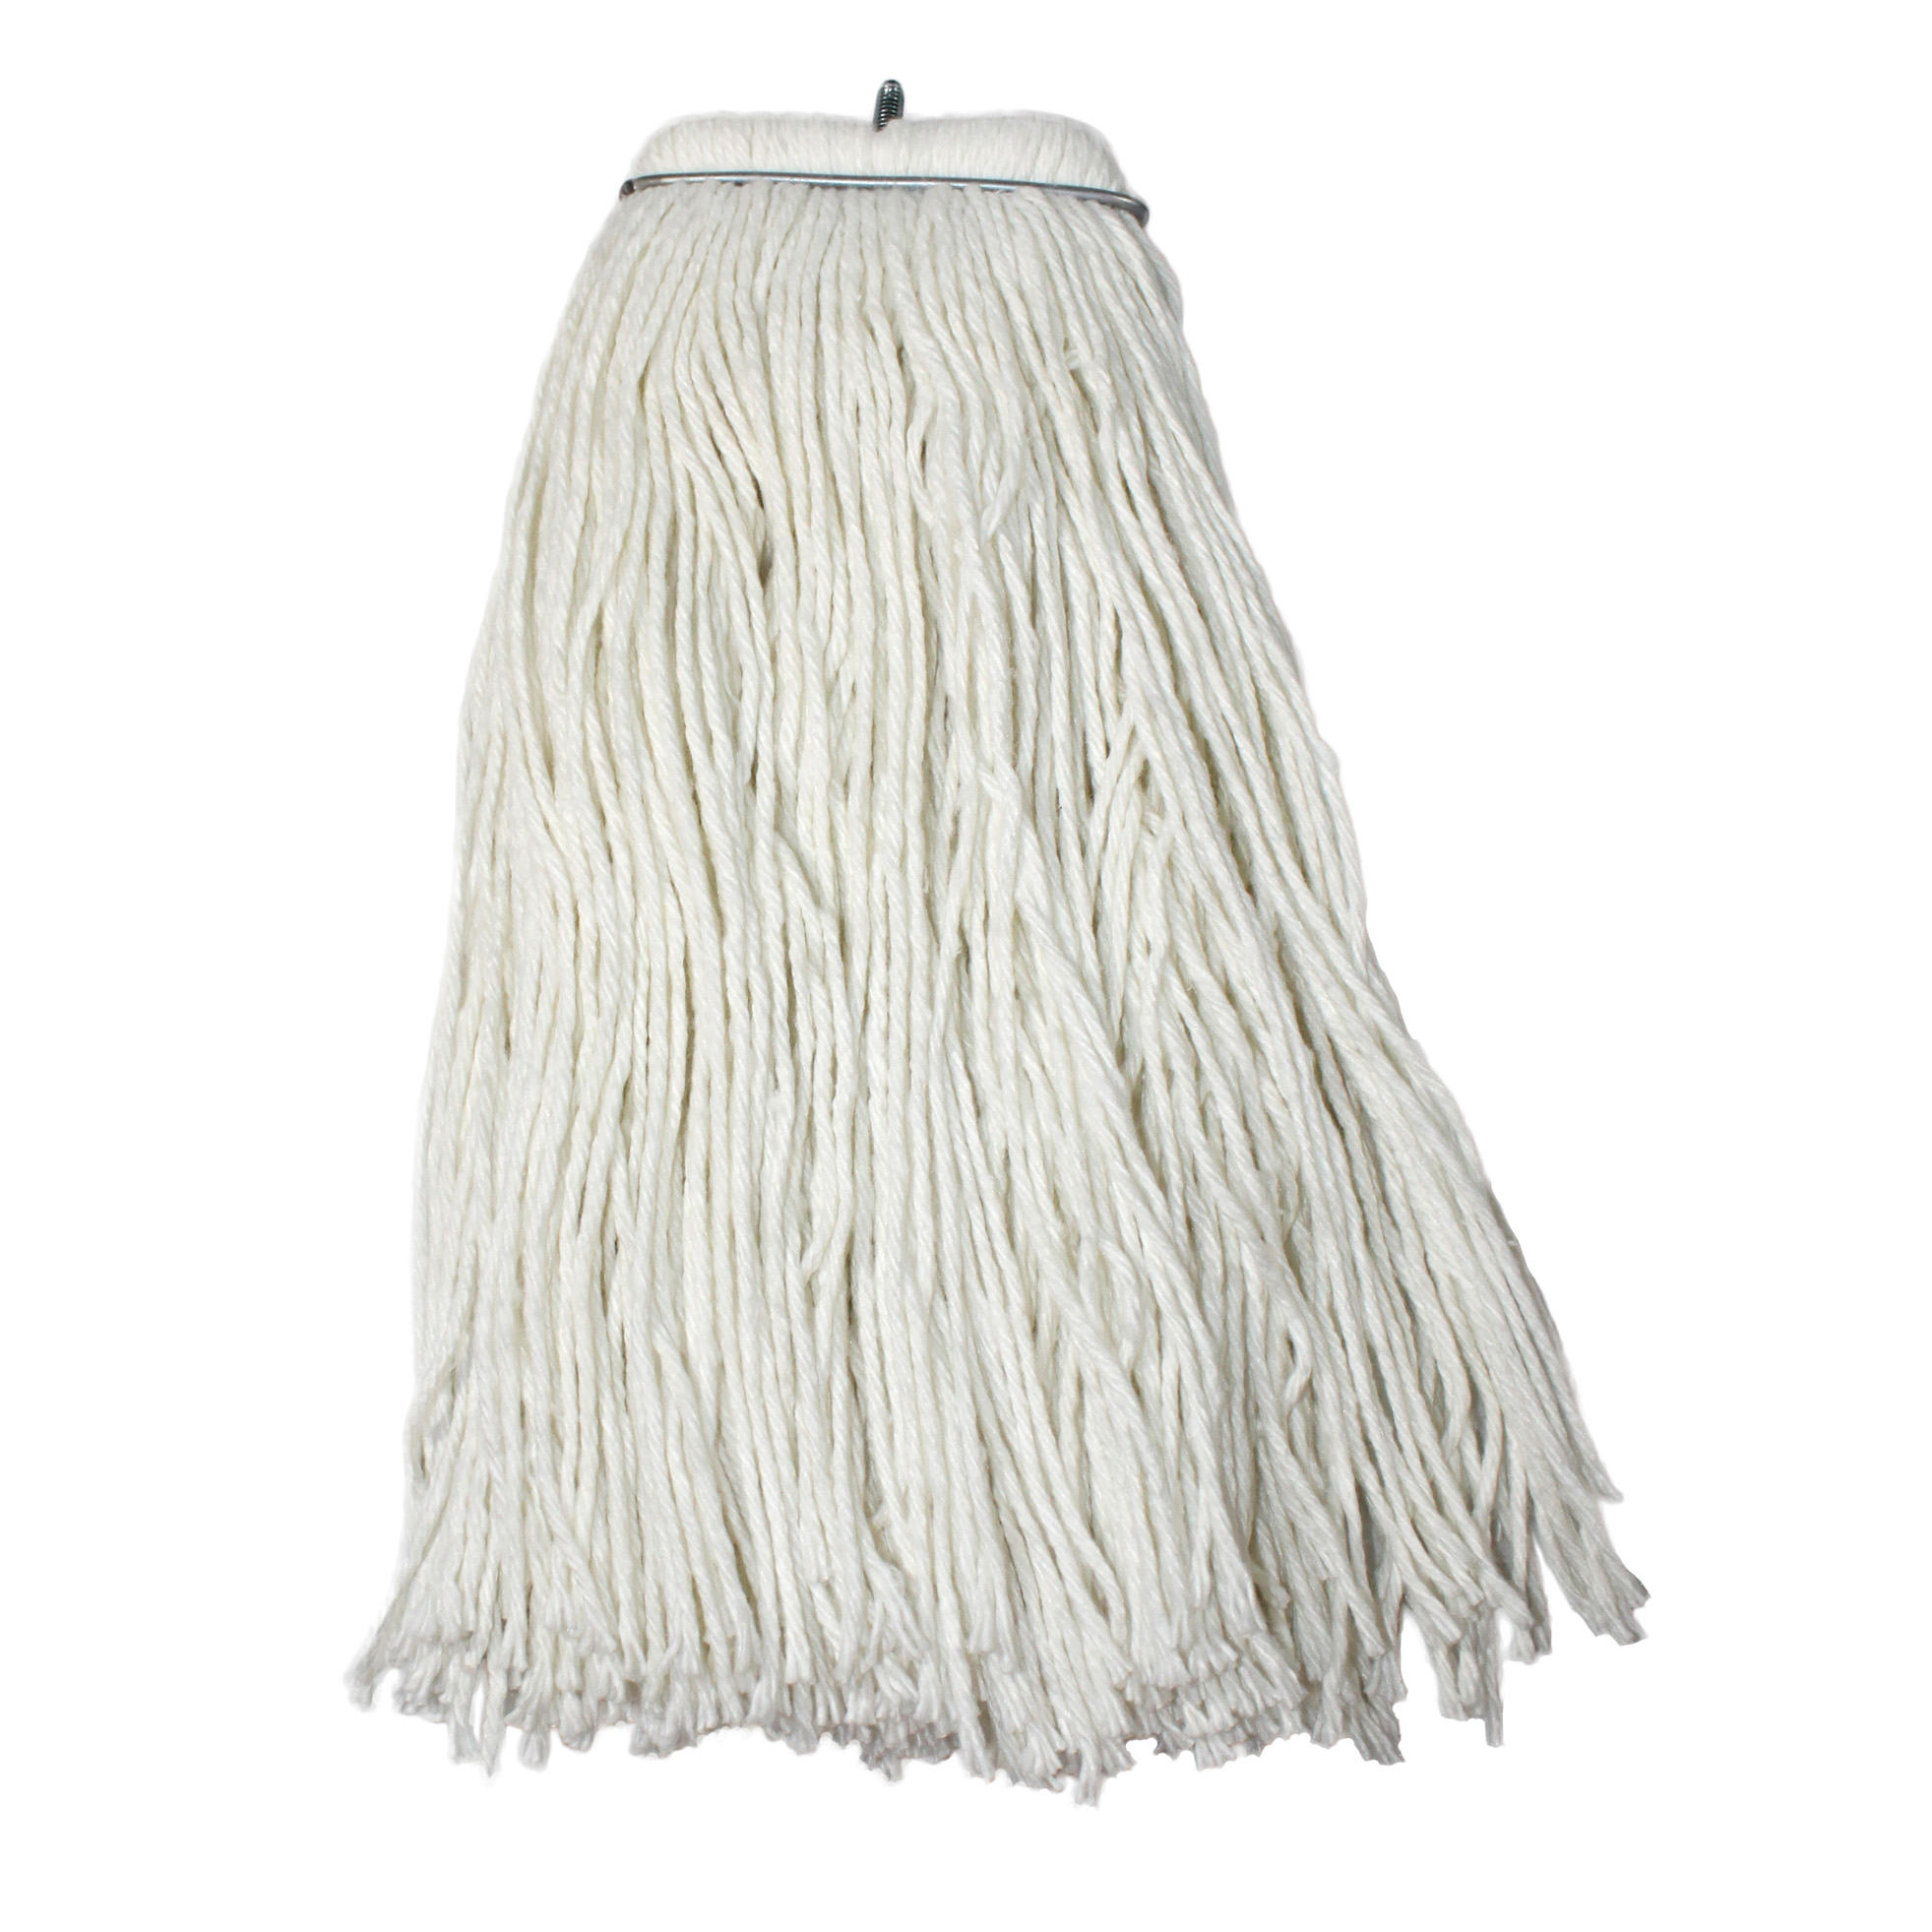 Impact Products 61116 wet mop head